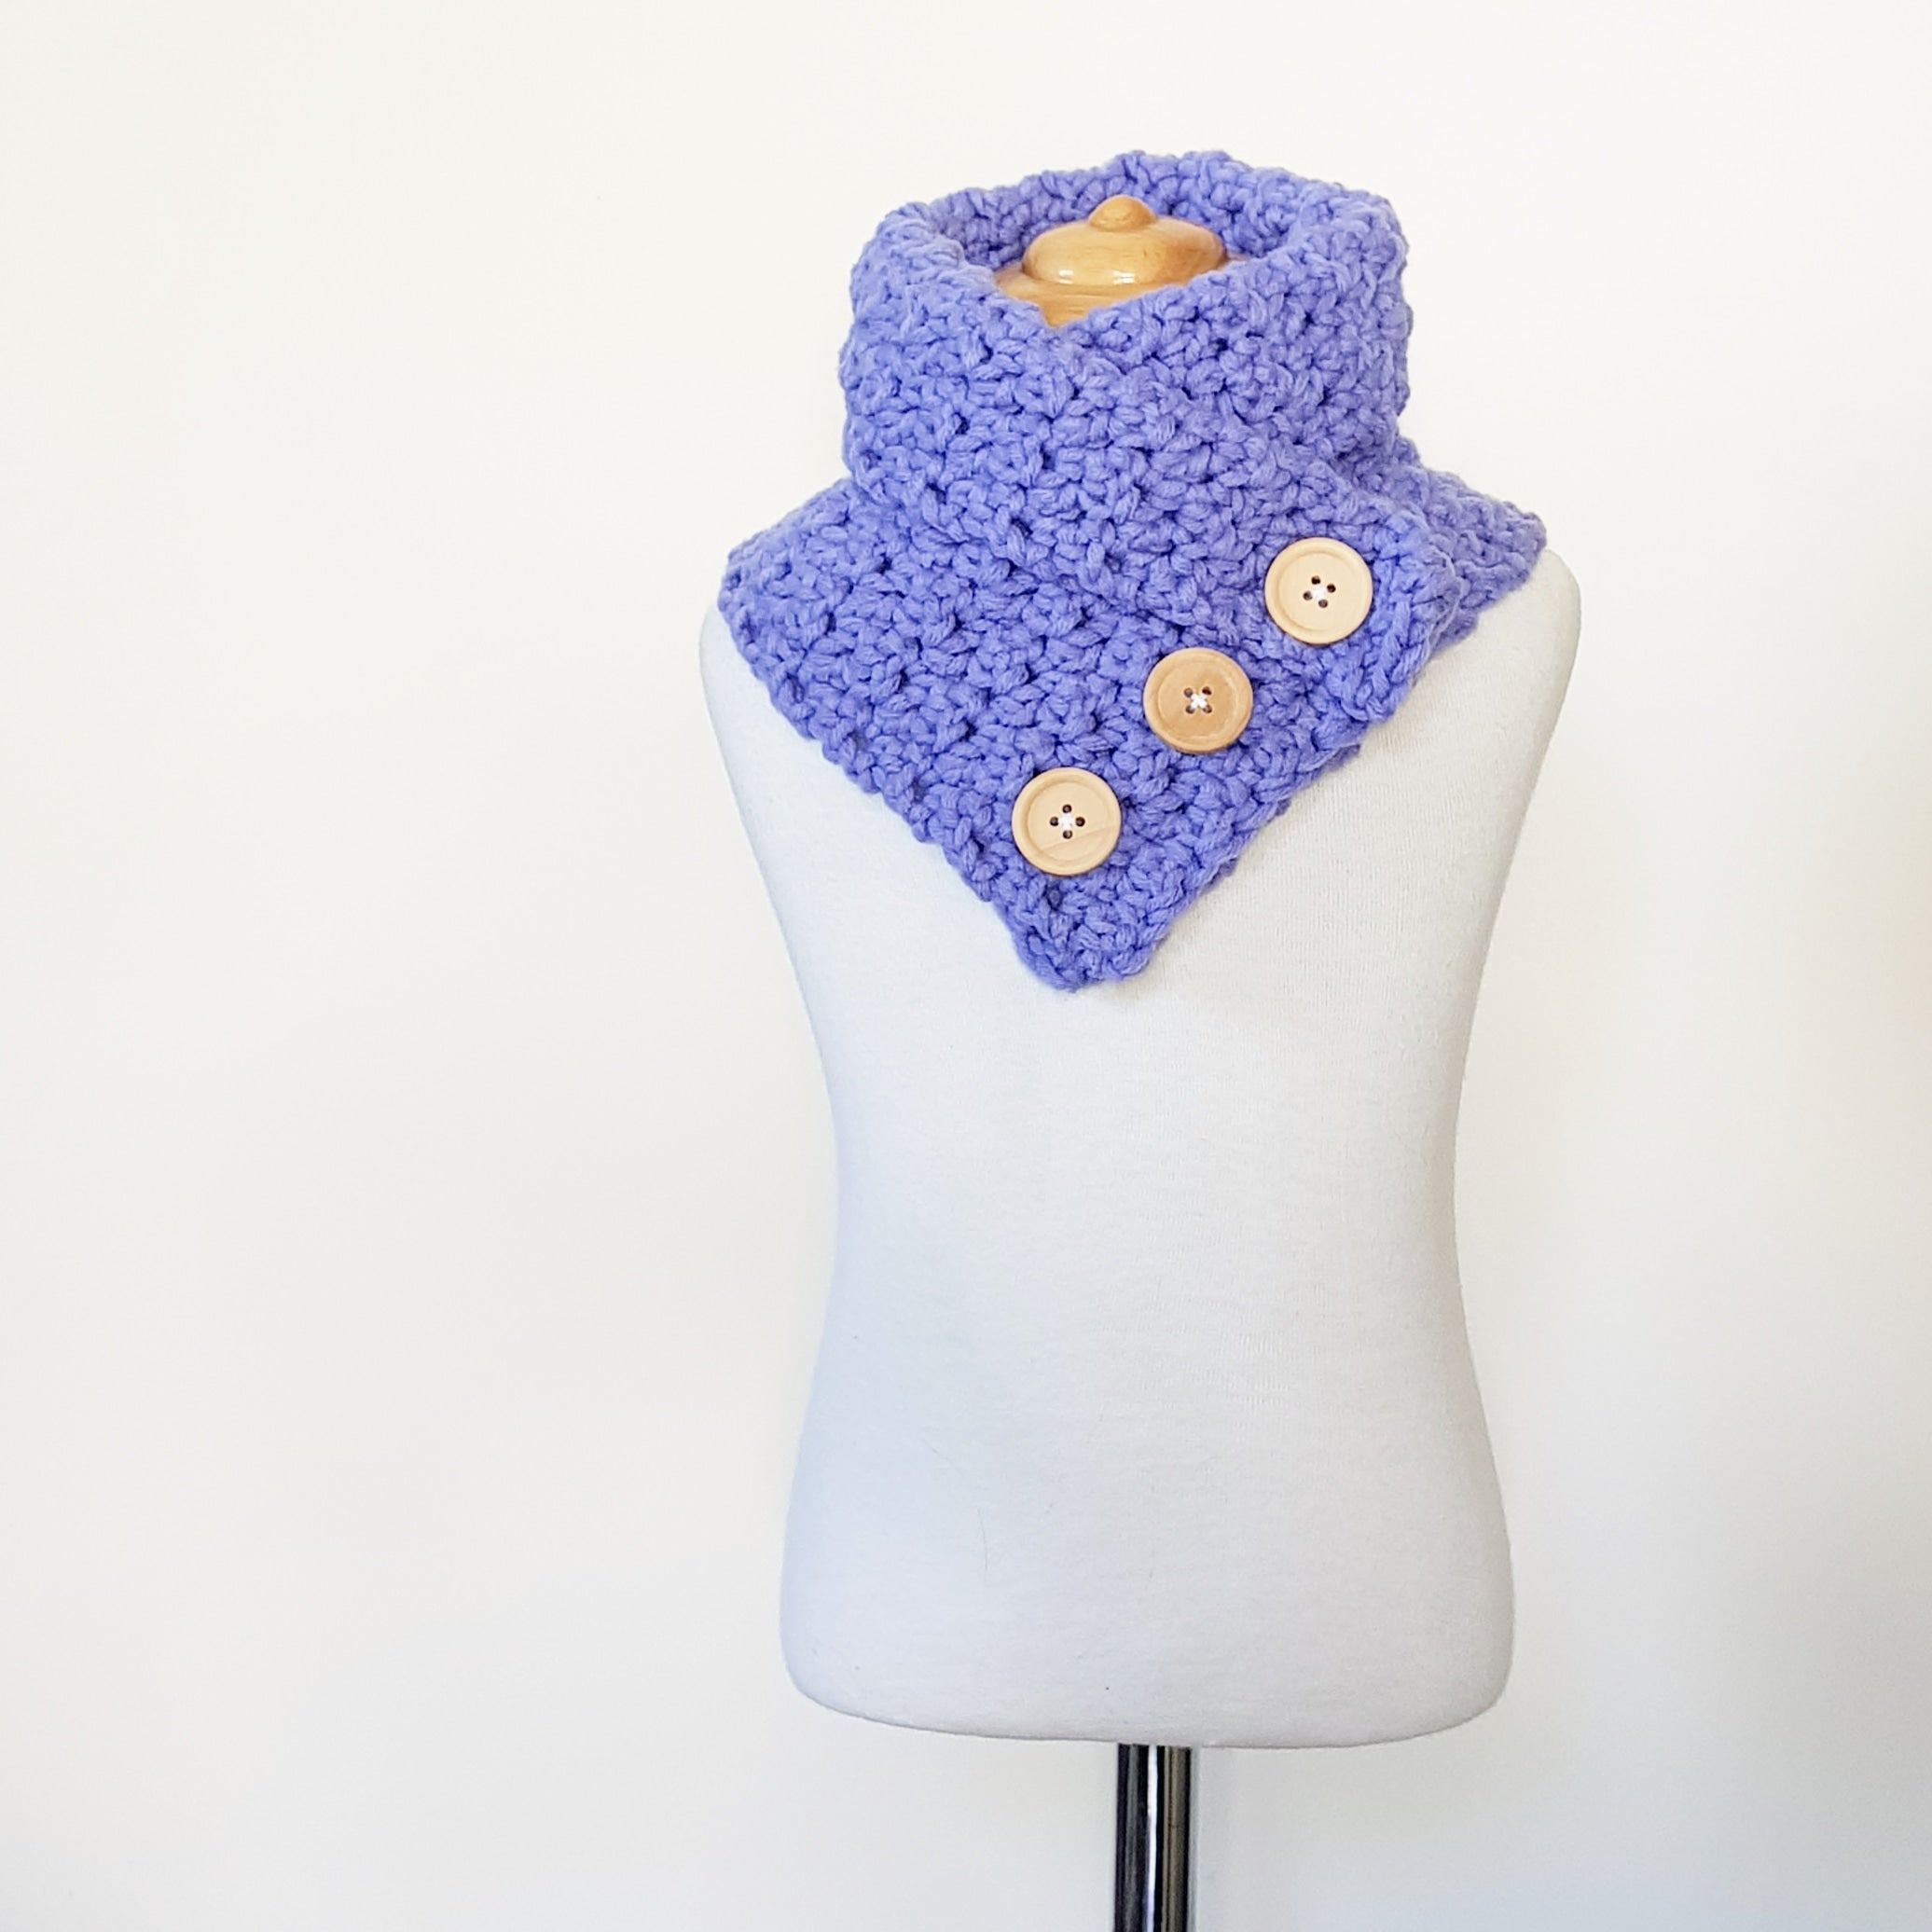 CROCHET PATTERN - Crochet Dakota Cowl